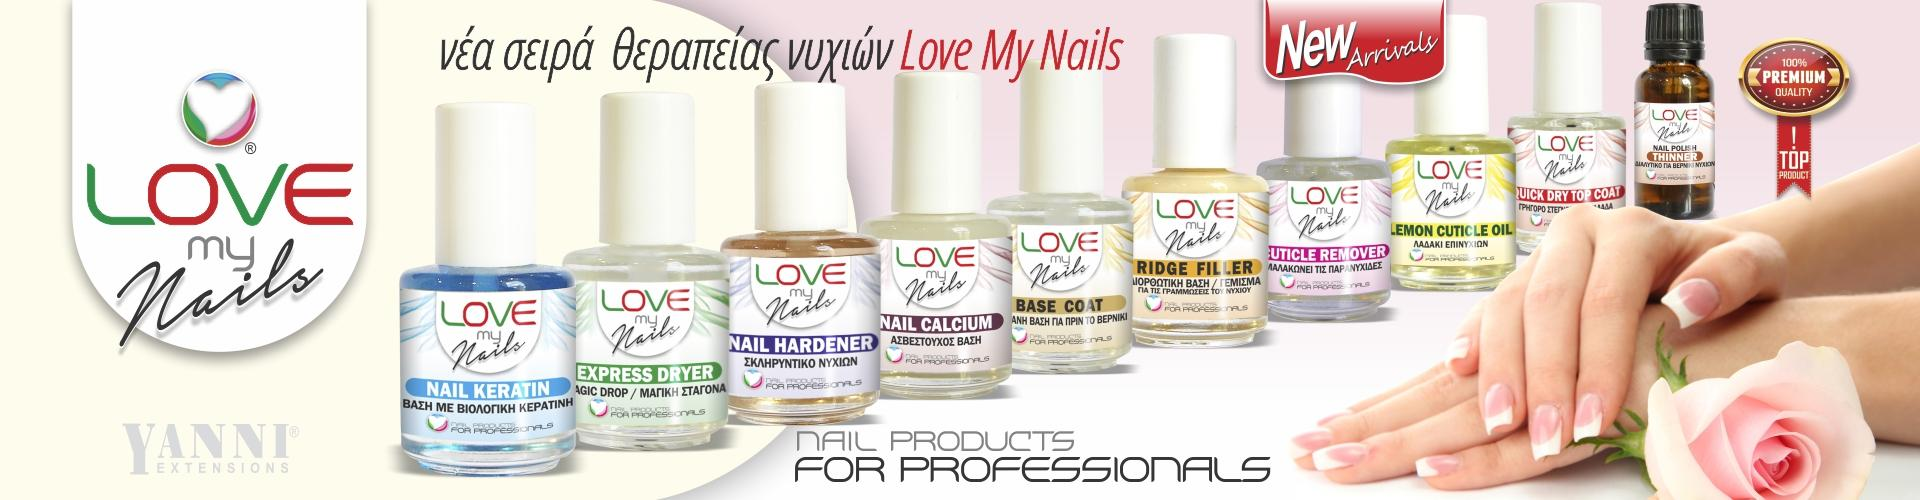 banner-love-my-nails-therapies